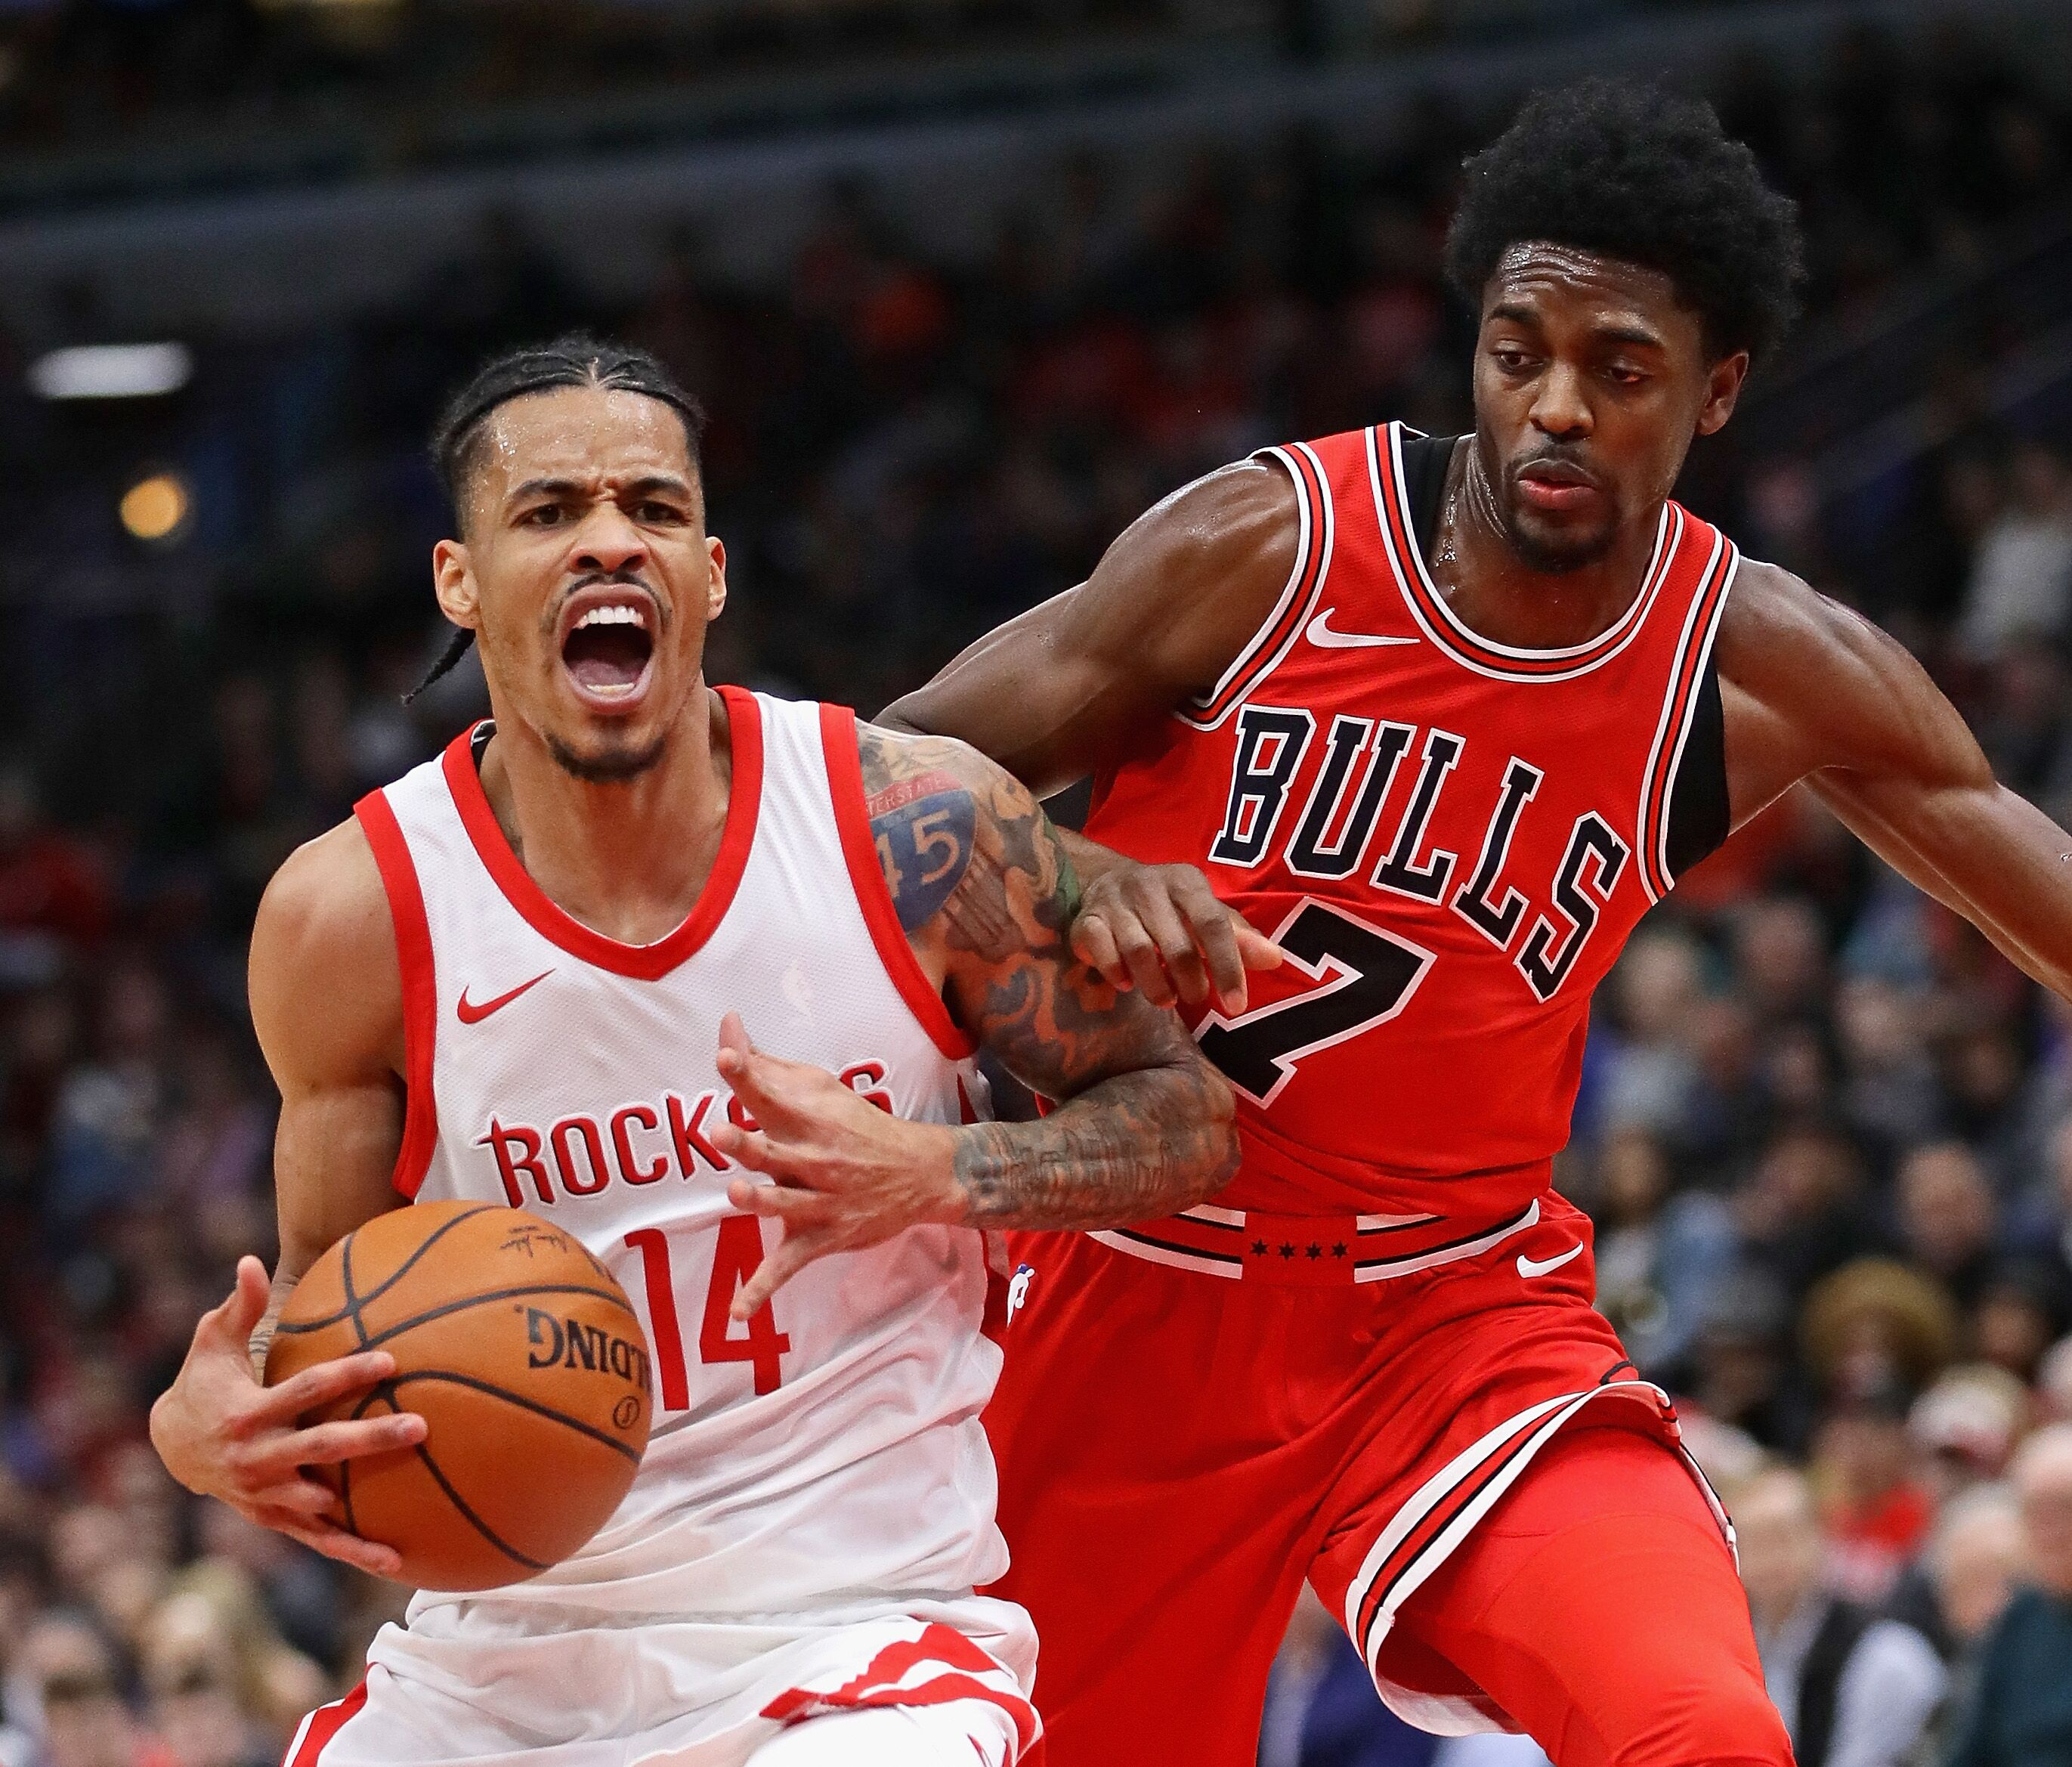 Rockets All Time Roster: Houston Rockets: Why Gerald Green Could Be Slipping Out Of